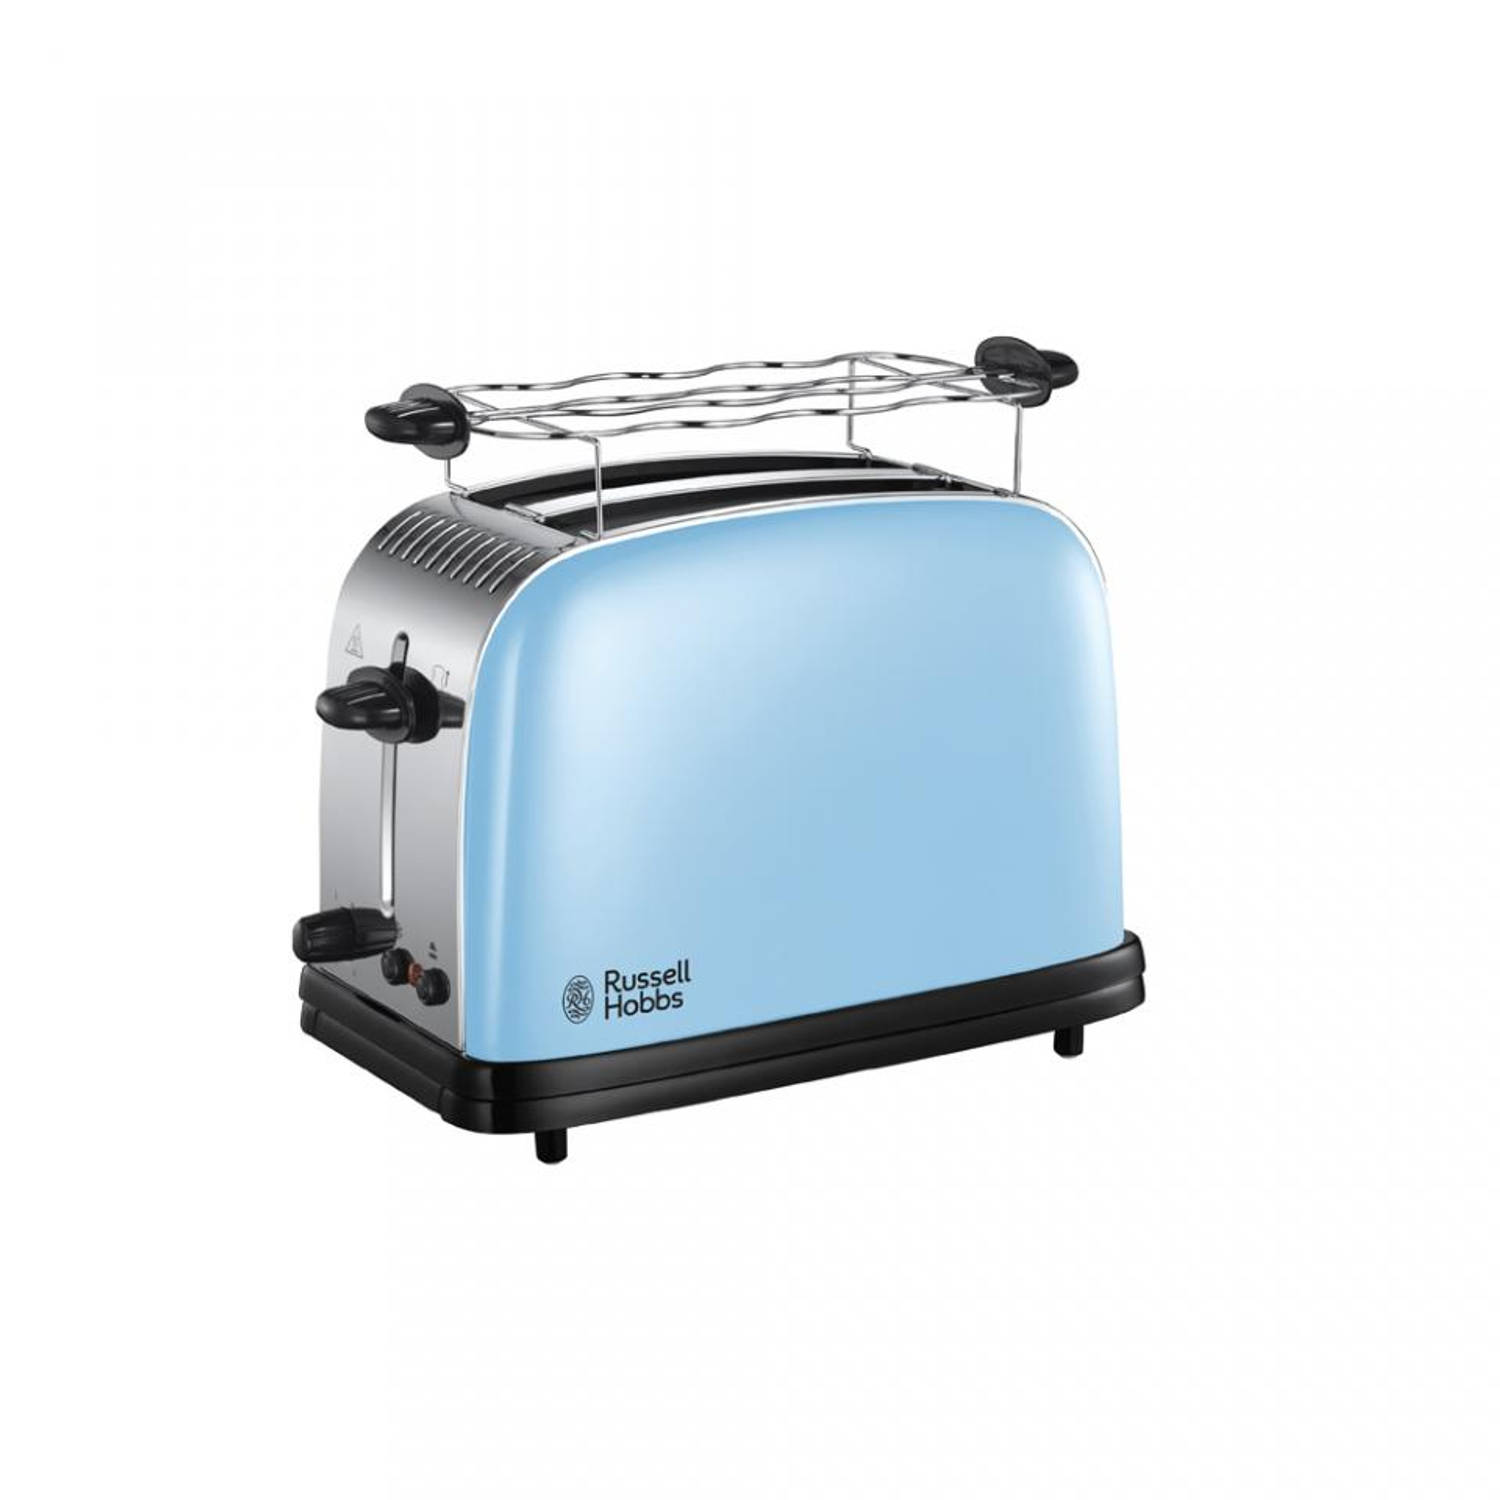 Russell Hobbs broodrooster colours plus - blauw